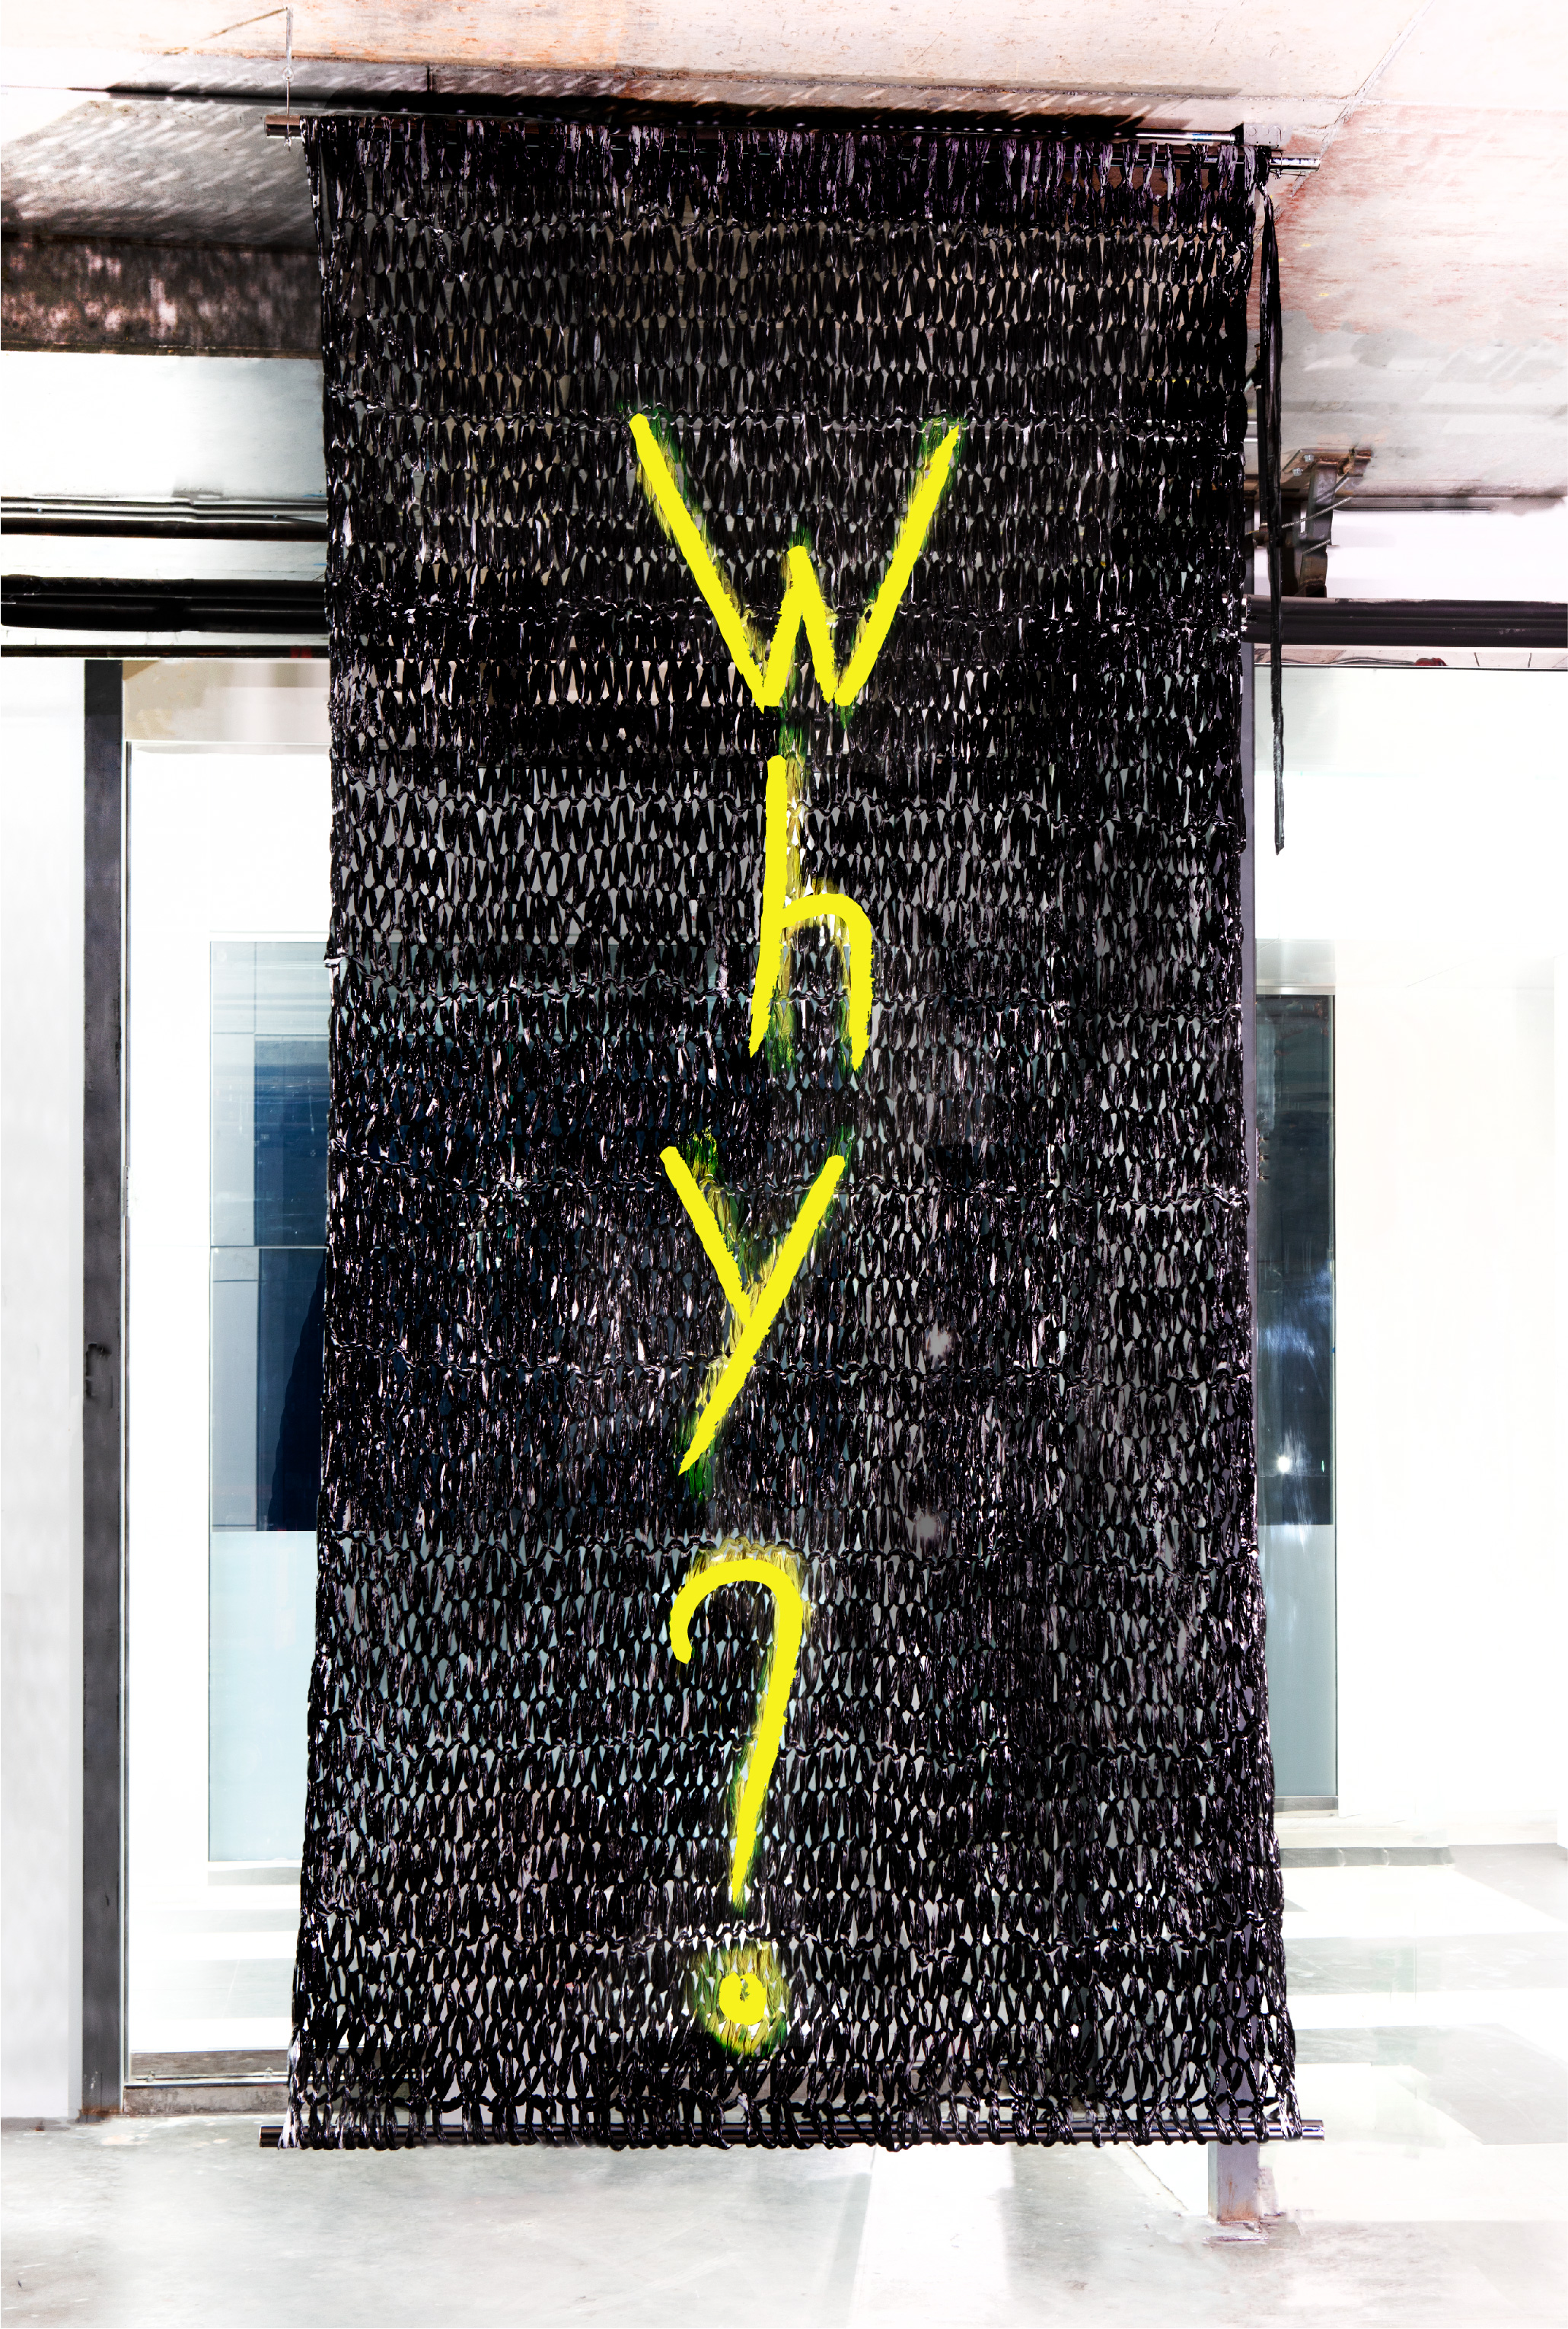 WHY? | 14 X 8' | PAINT ON PLASTIC